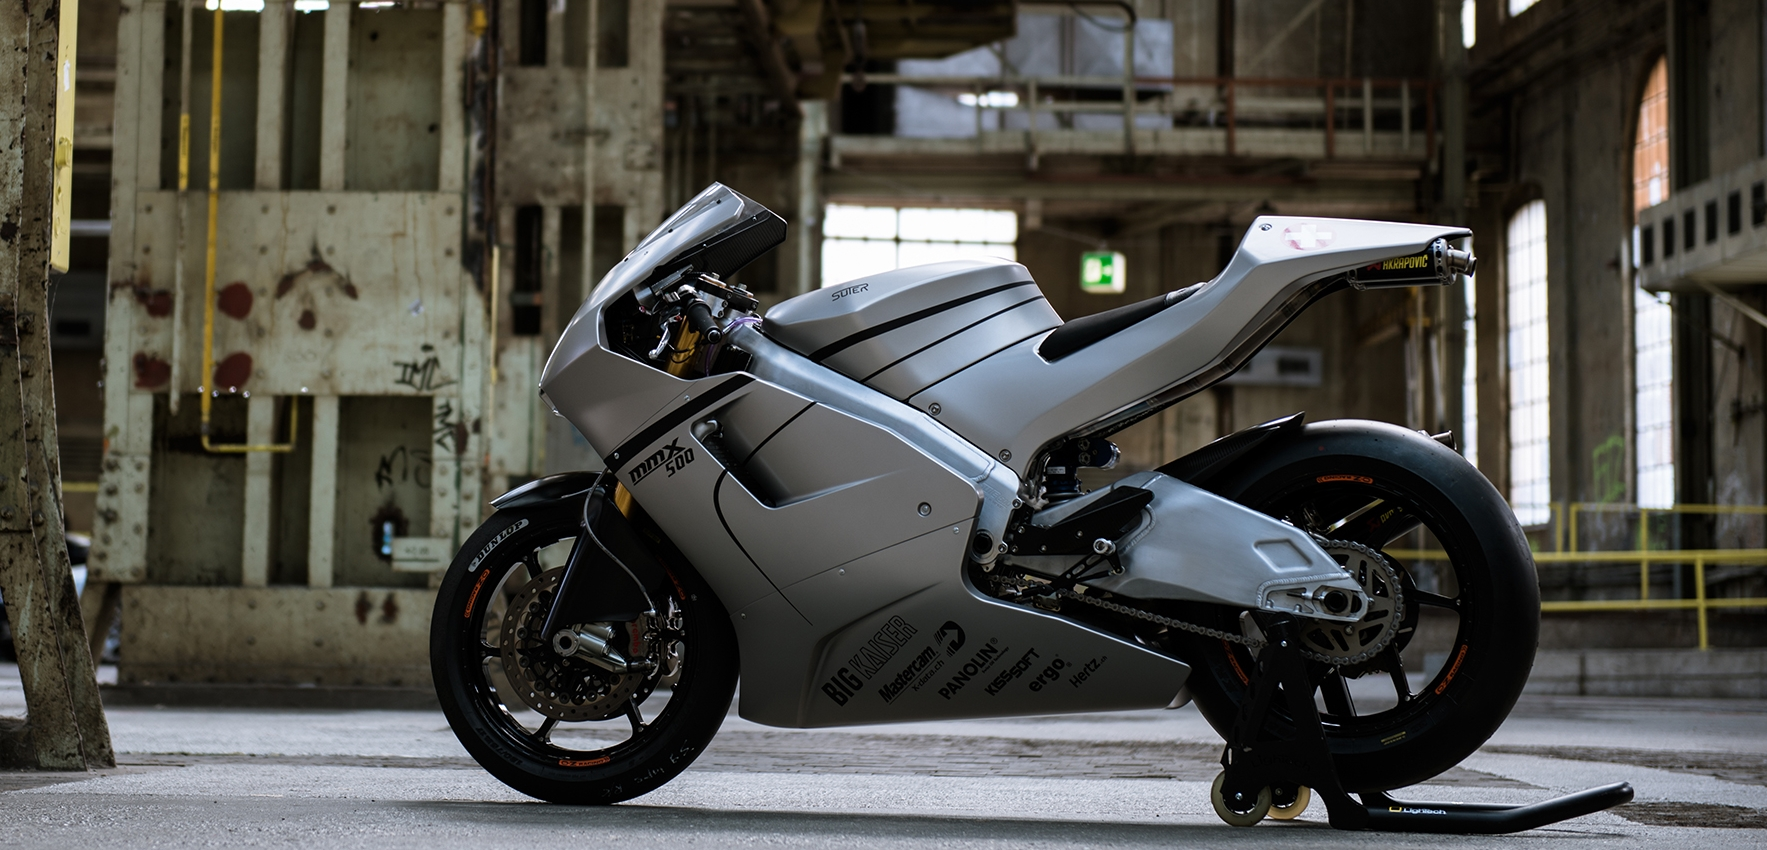 Suter Mmx 500 Confirmed For The 2016 Isle Of Man Tt